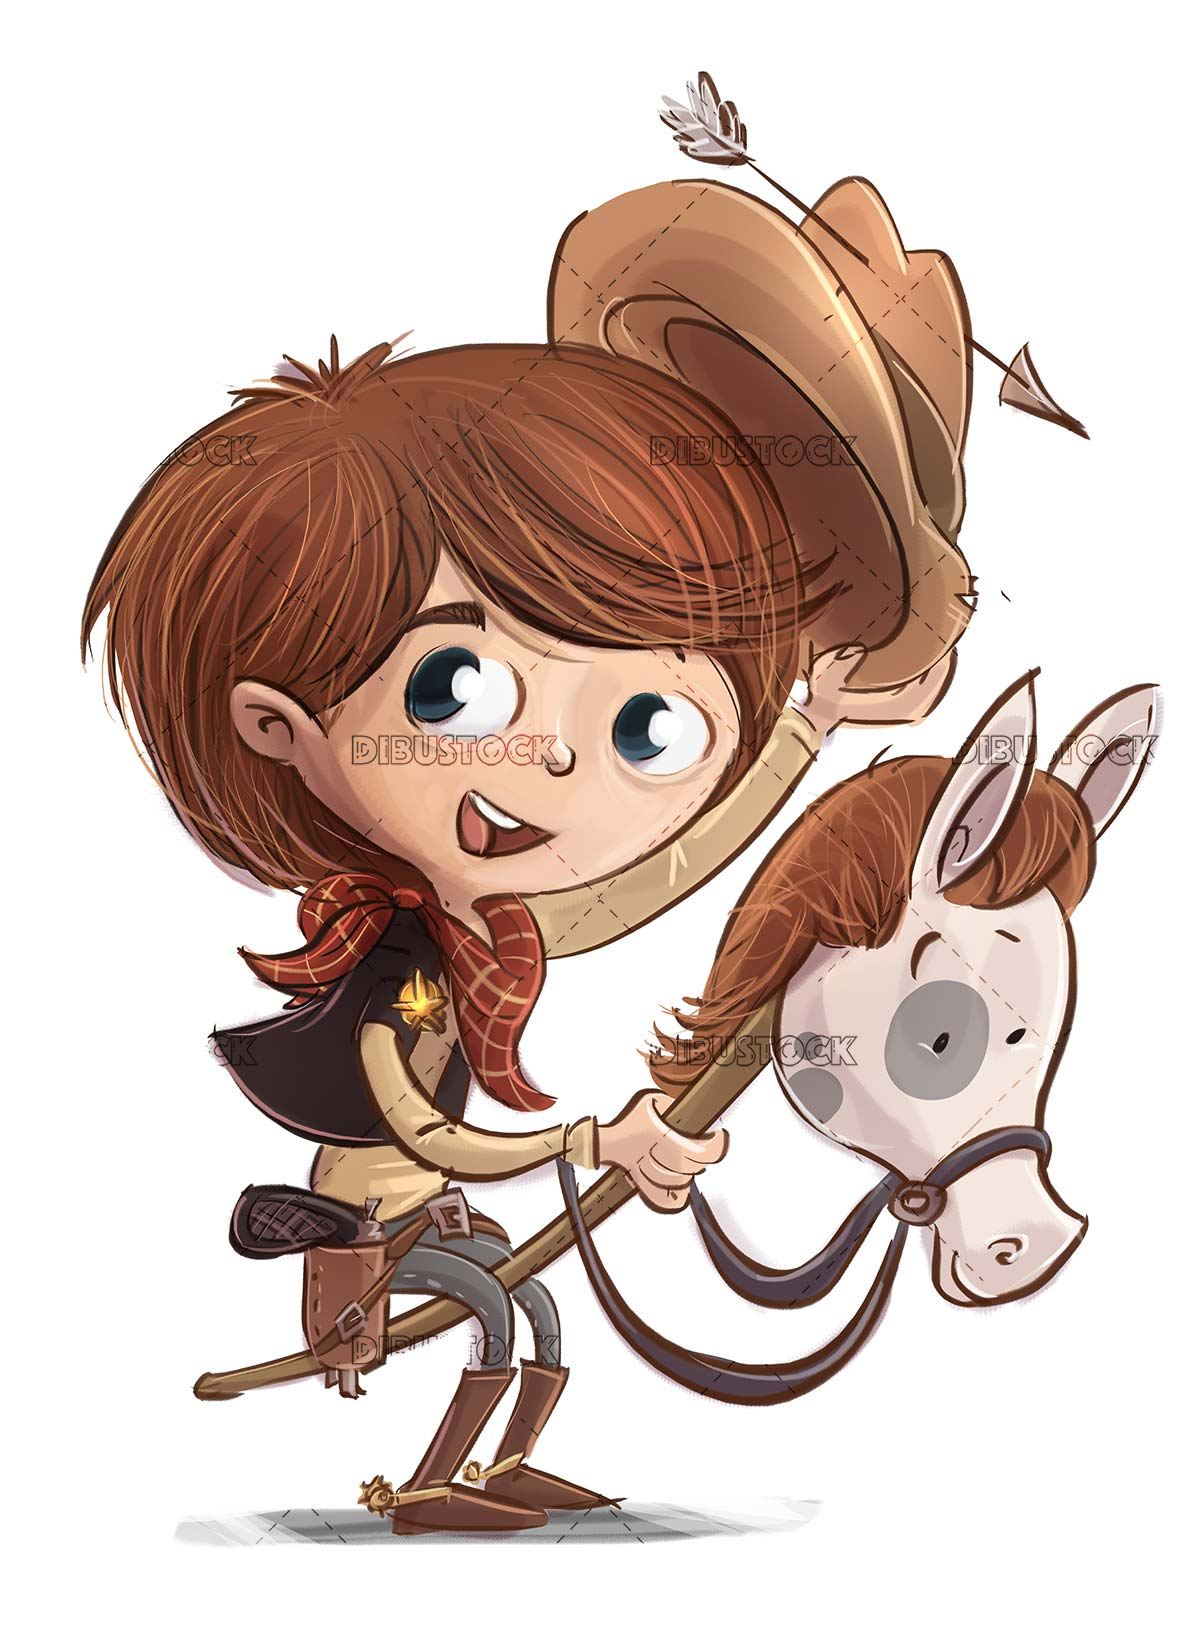 boy with cowboy costume and toy horse